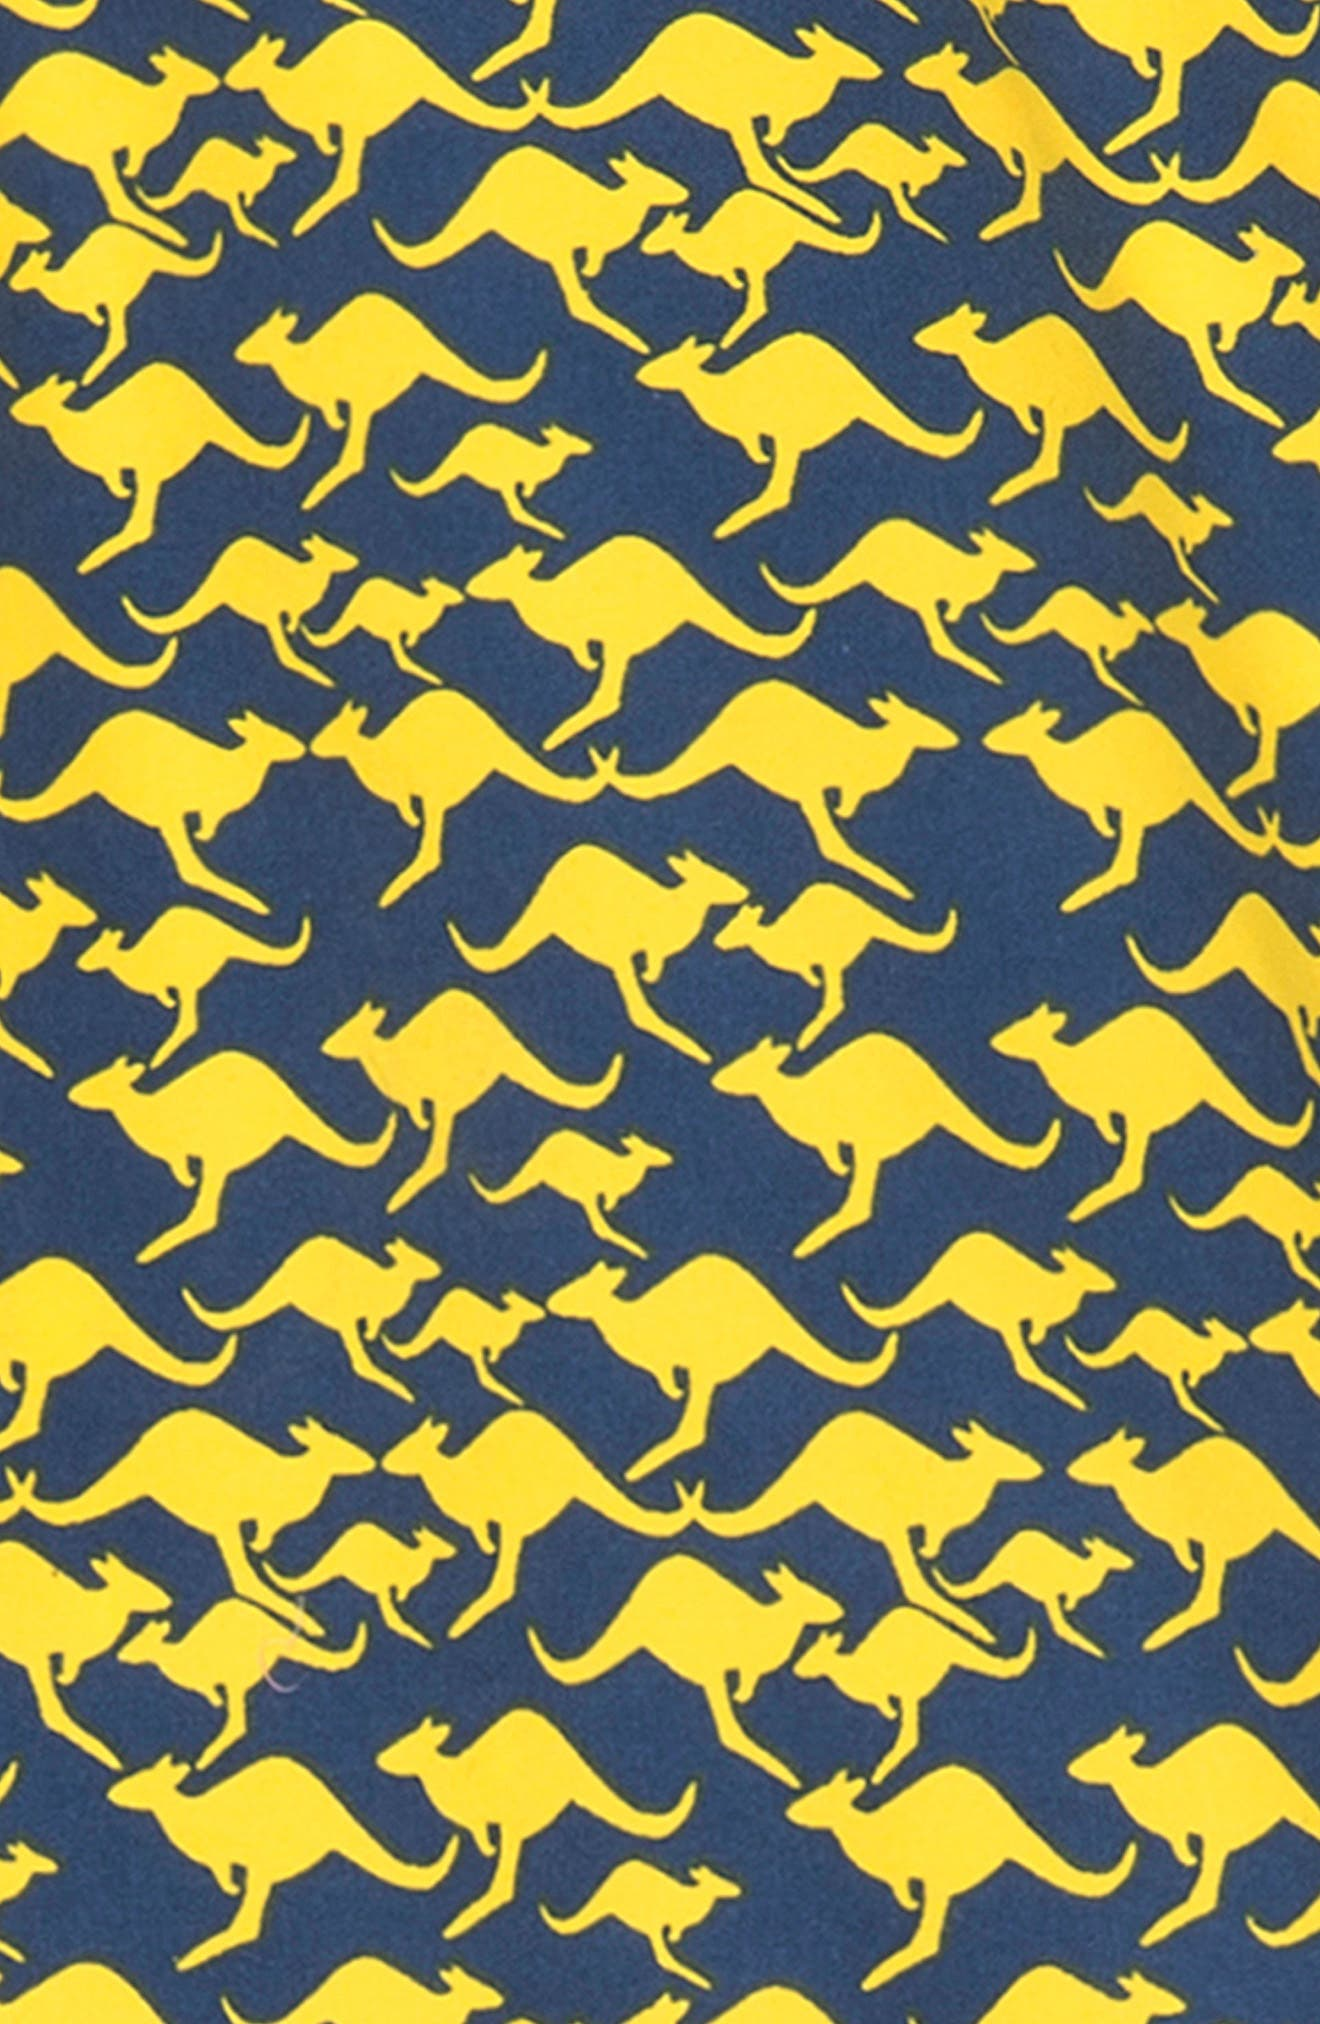 Kangaroo Swim Trunks,                             Alternate thumbnail 3, color,                             700